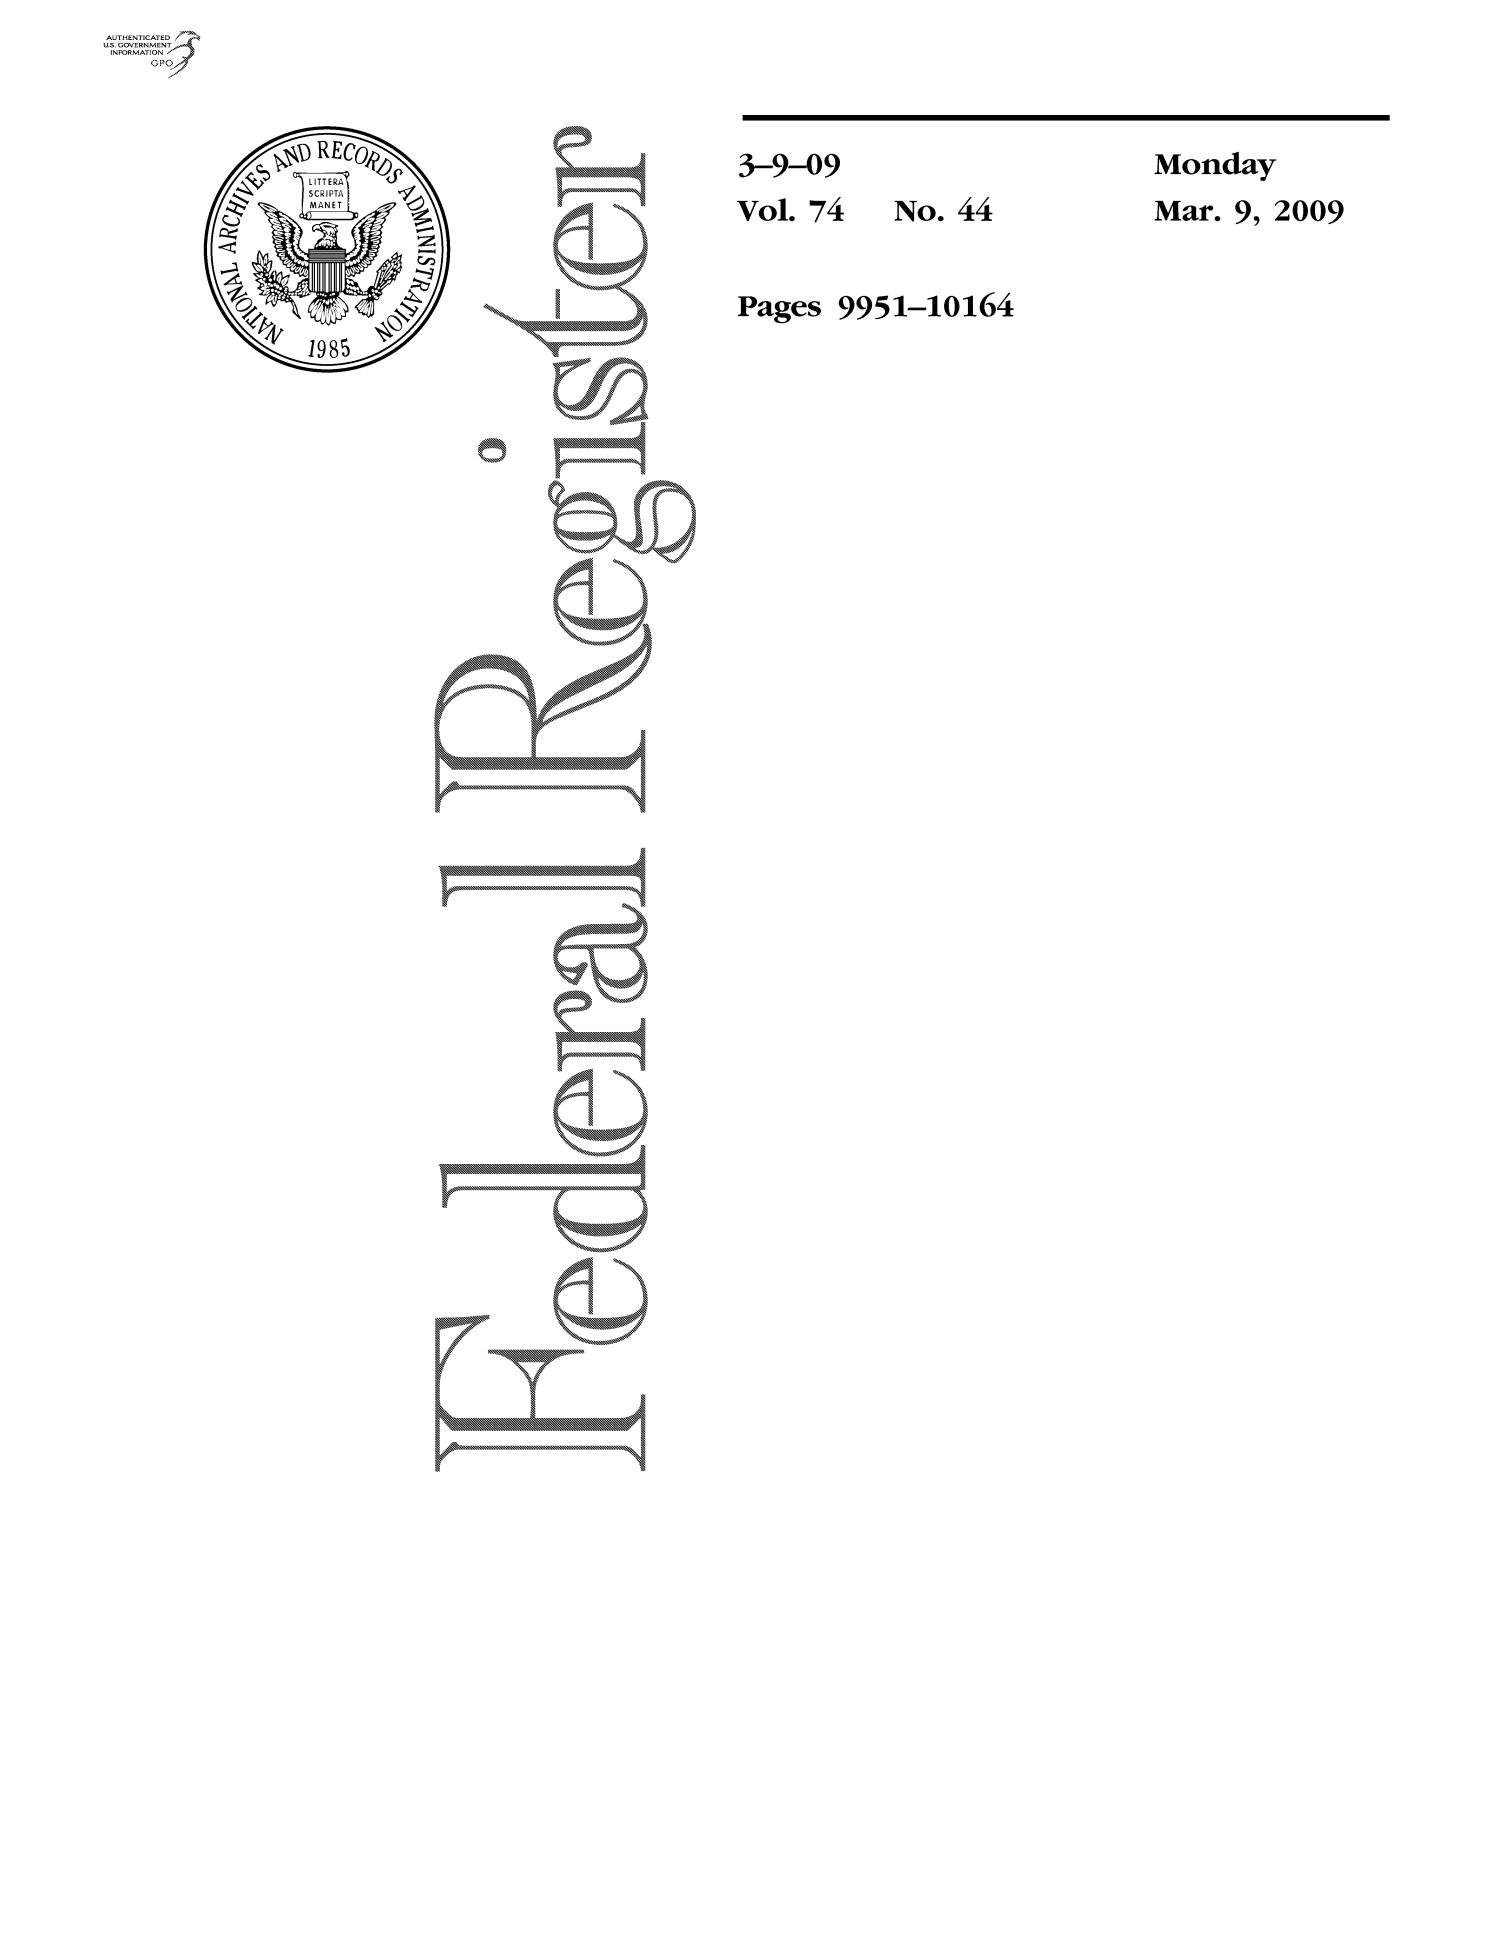 Federal Register, Volume 74, Number 44, March 9, 2009, Pages 9951-10164                                                                                                      Title Page